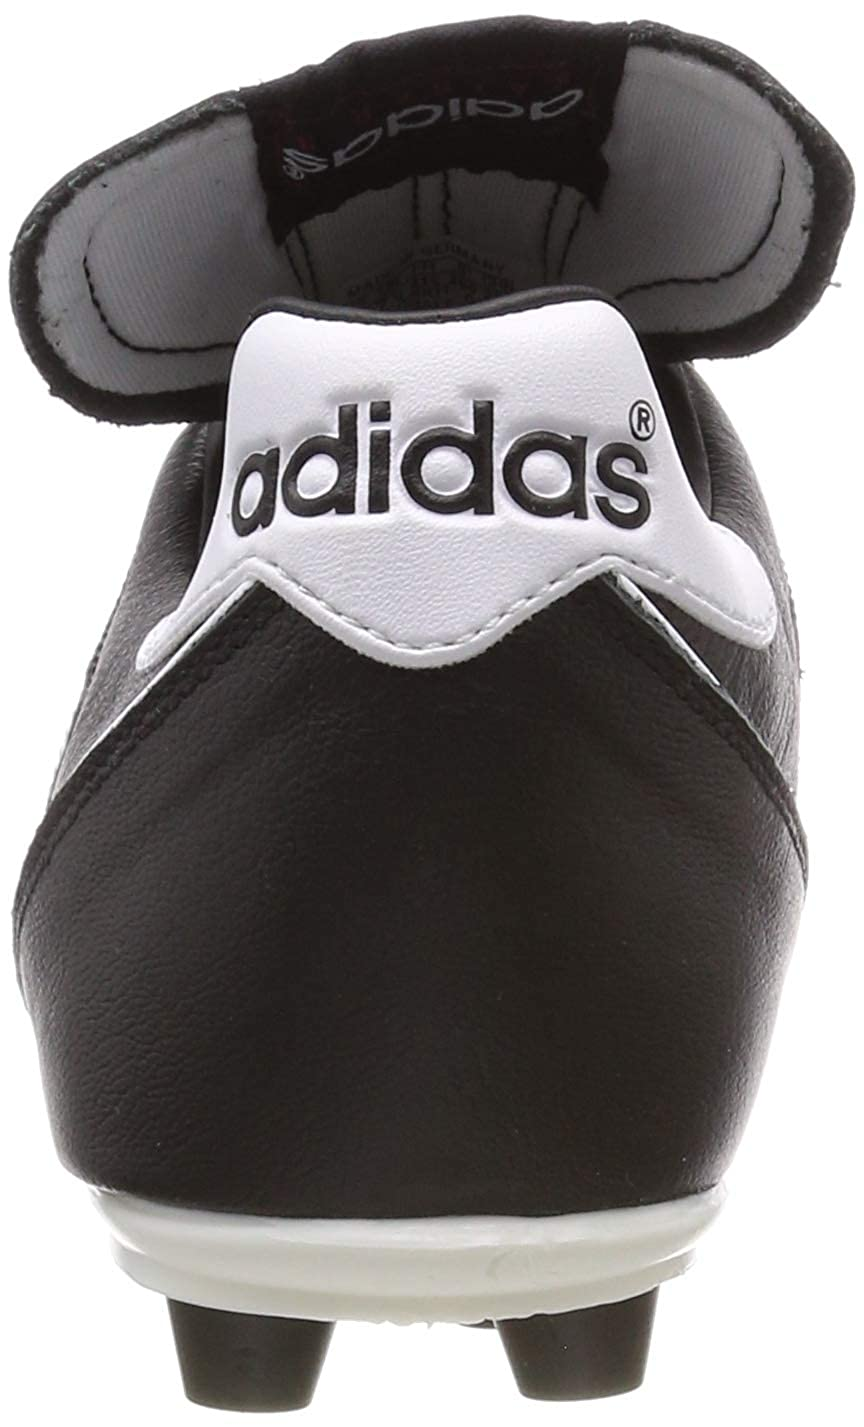 buy popular 9621e 70207 Adidas Copa Mundial , Mixte Adulte  MainApps  Amazon.fr  Chaussures et Sacs